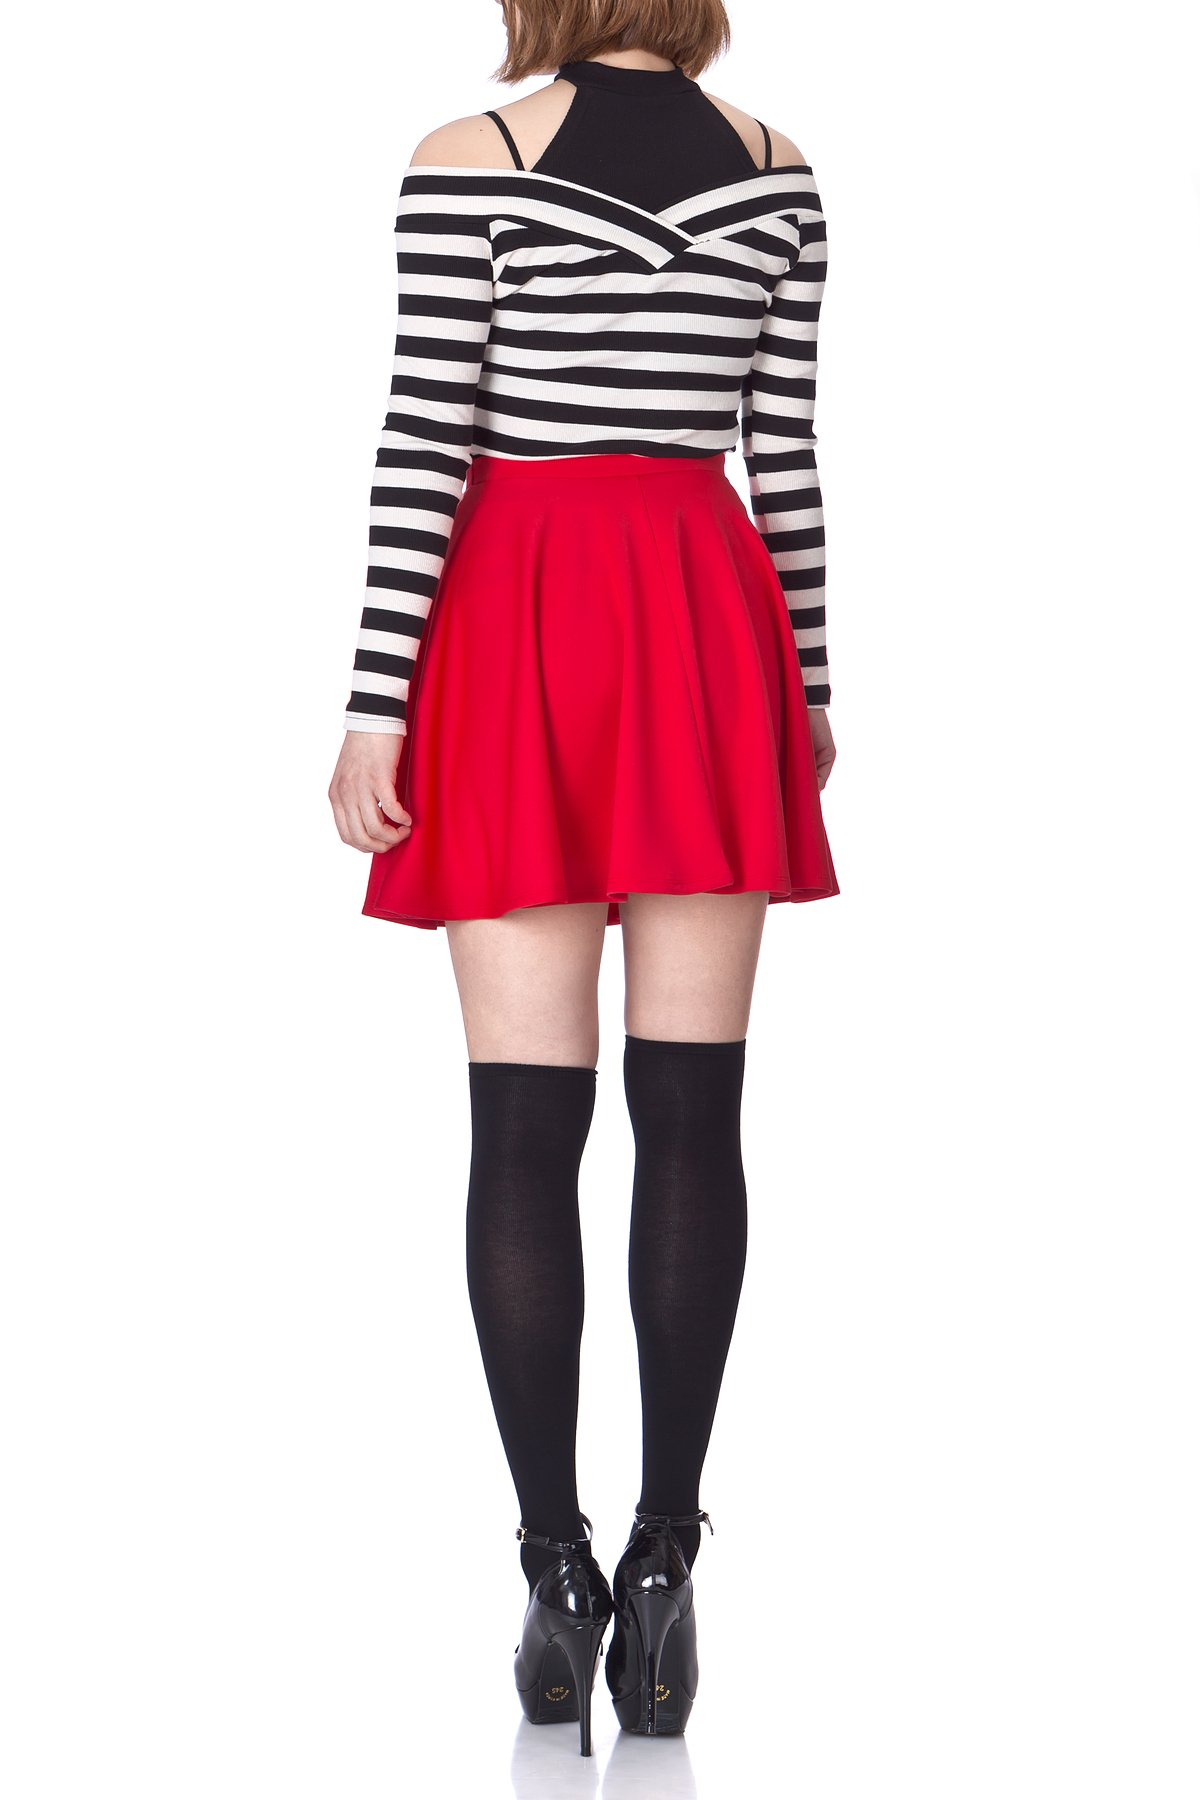 Flouncy High Waist A line Full Flared Circle Swing Dance Party Casual Skater Short Mini Skirt Red 05 2